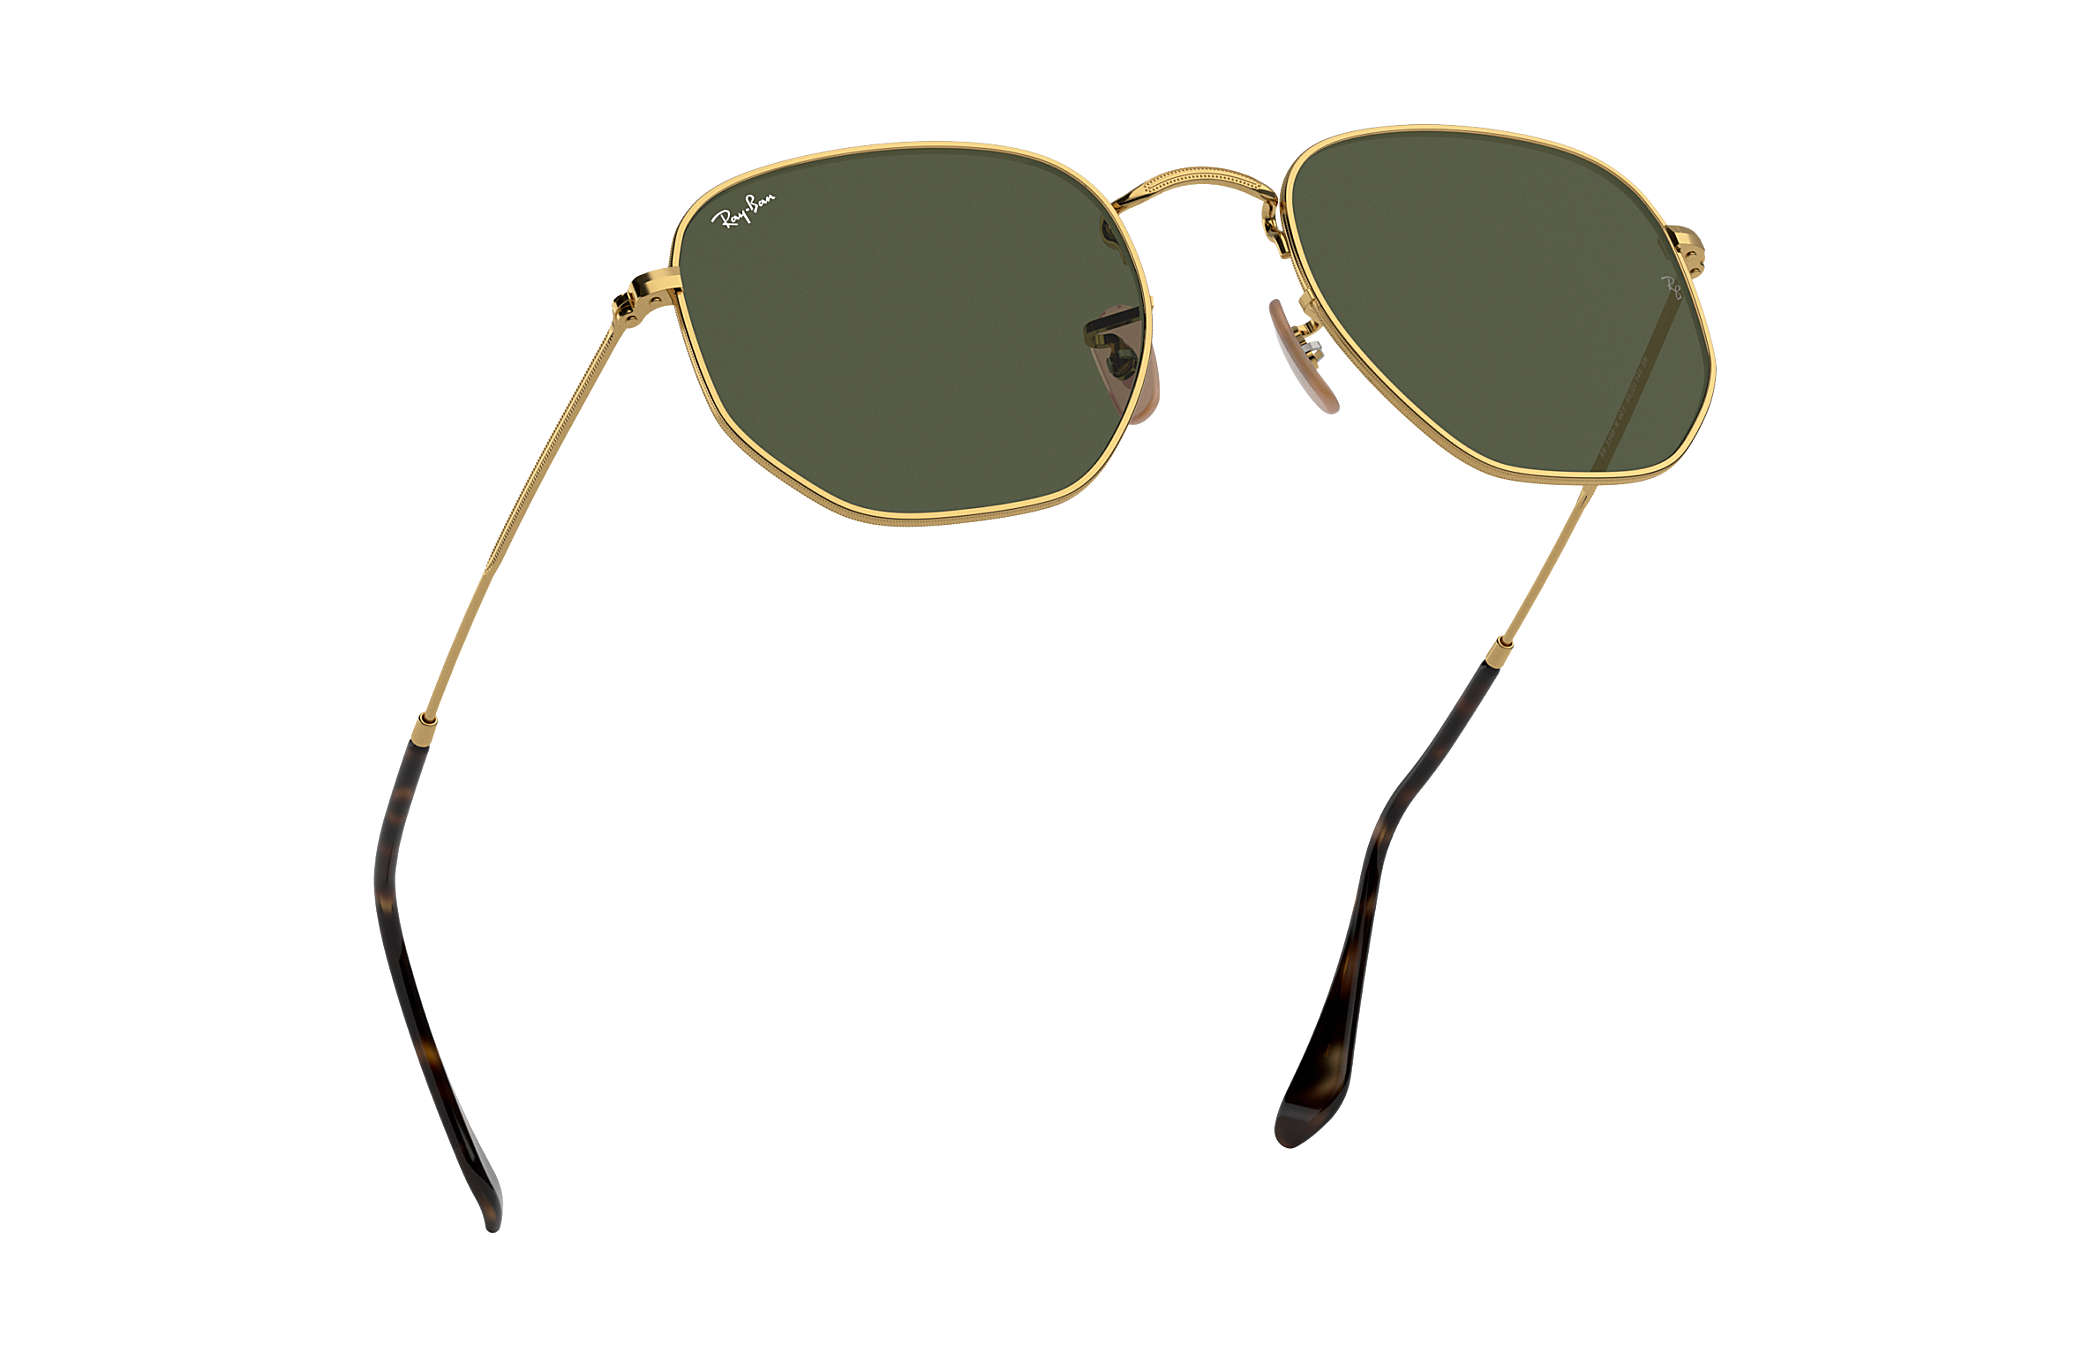 959f6b6b4f Ray-Ban Hexagonal Flat Lenses RB3548N Gold - Metal - Green Lenses ...